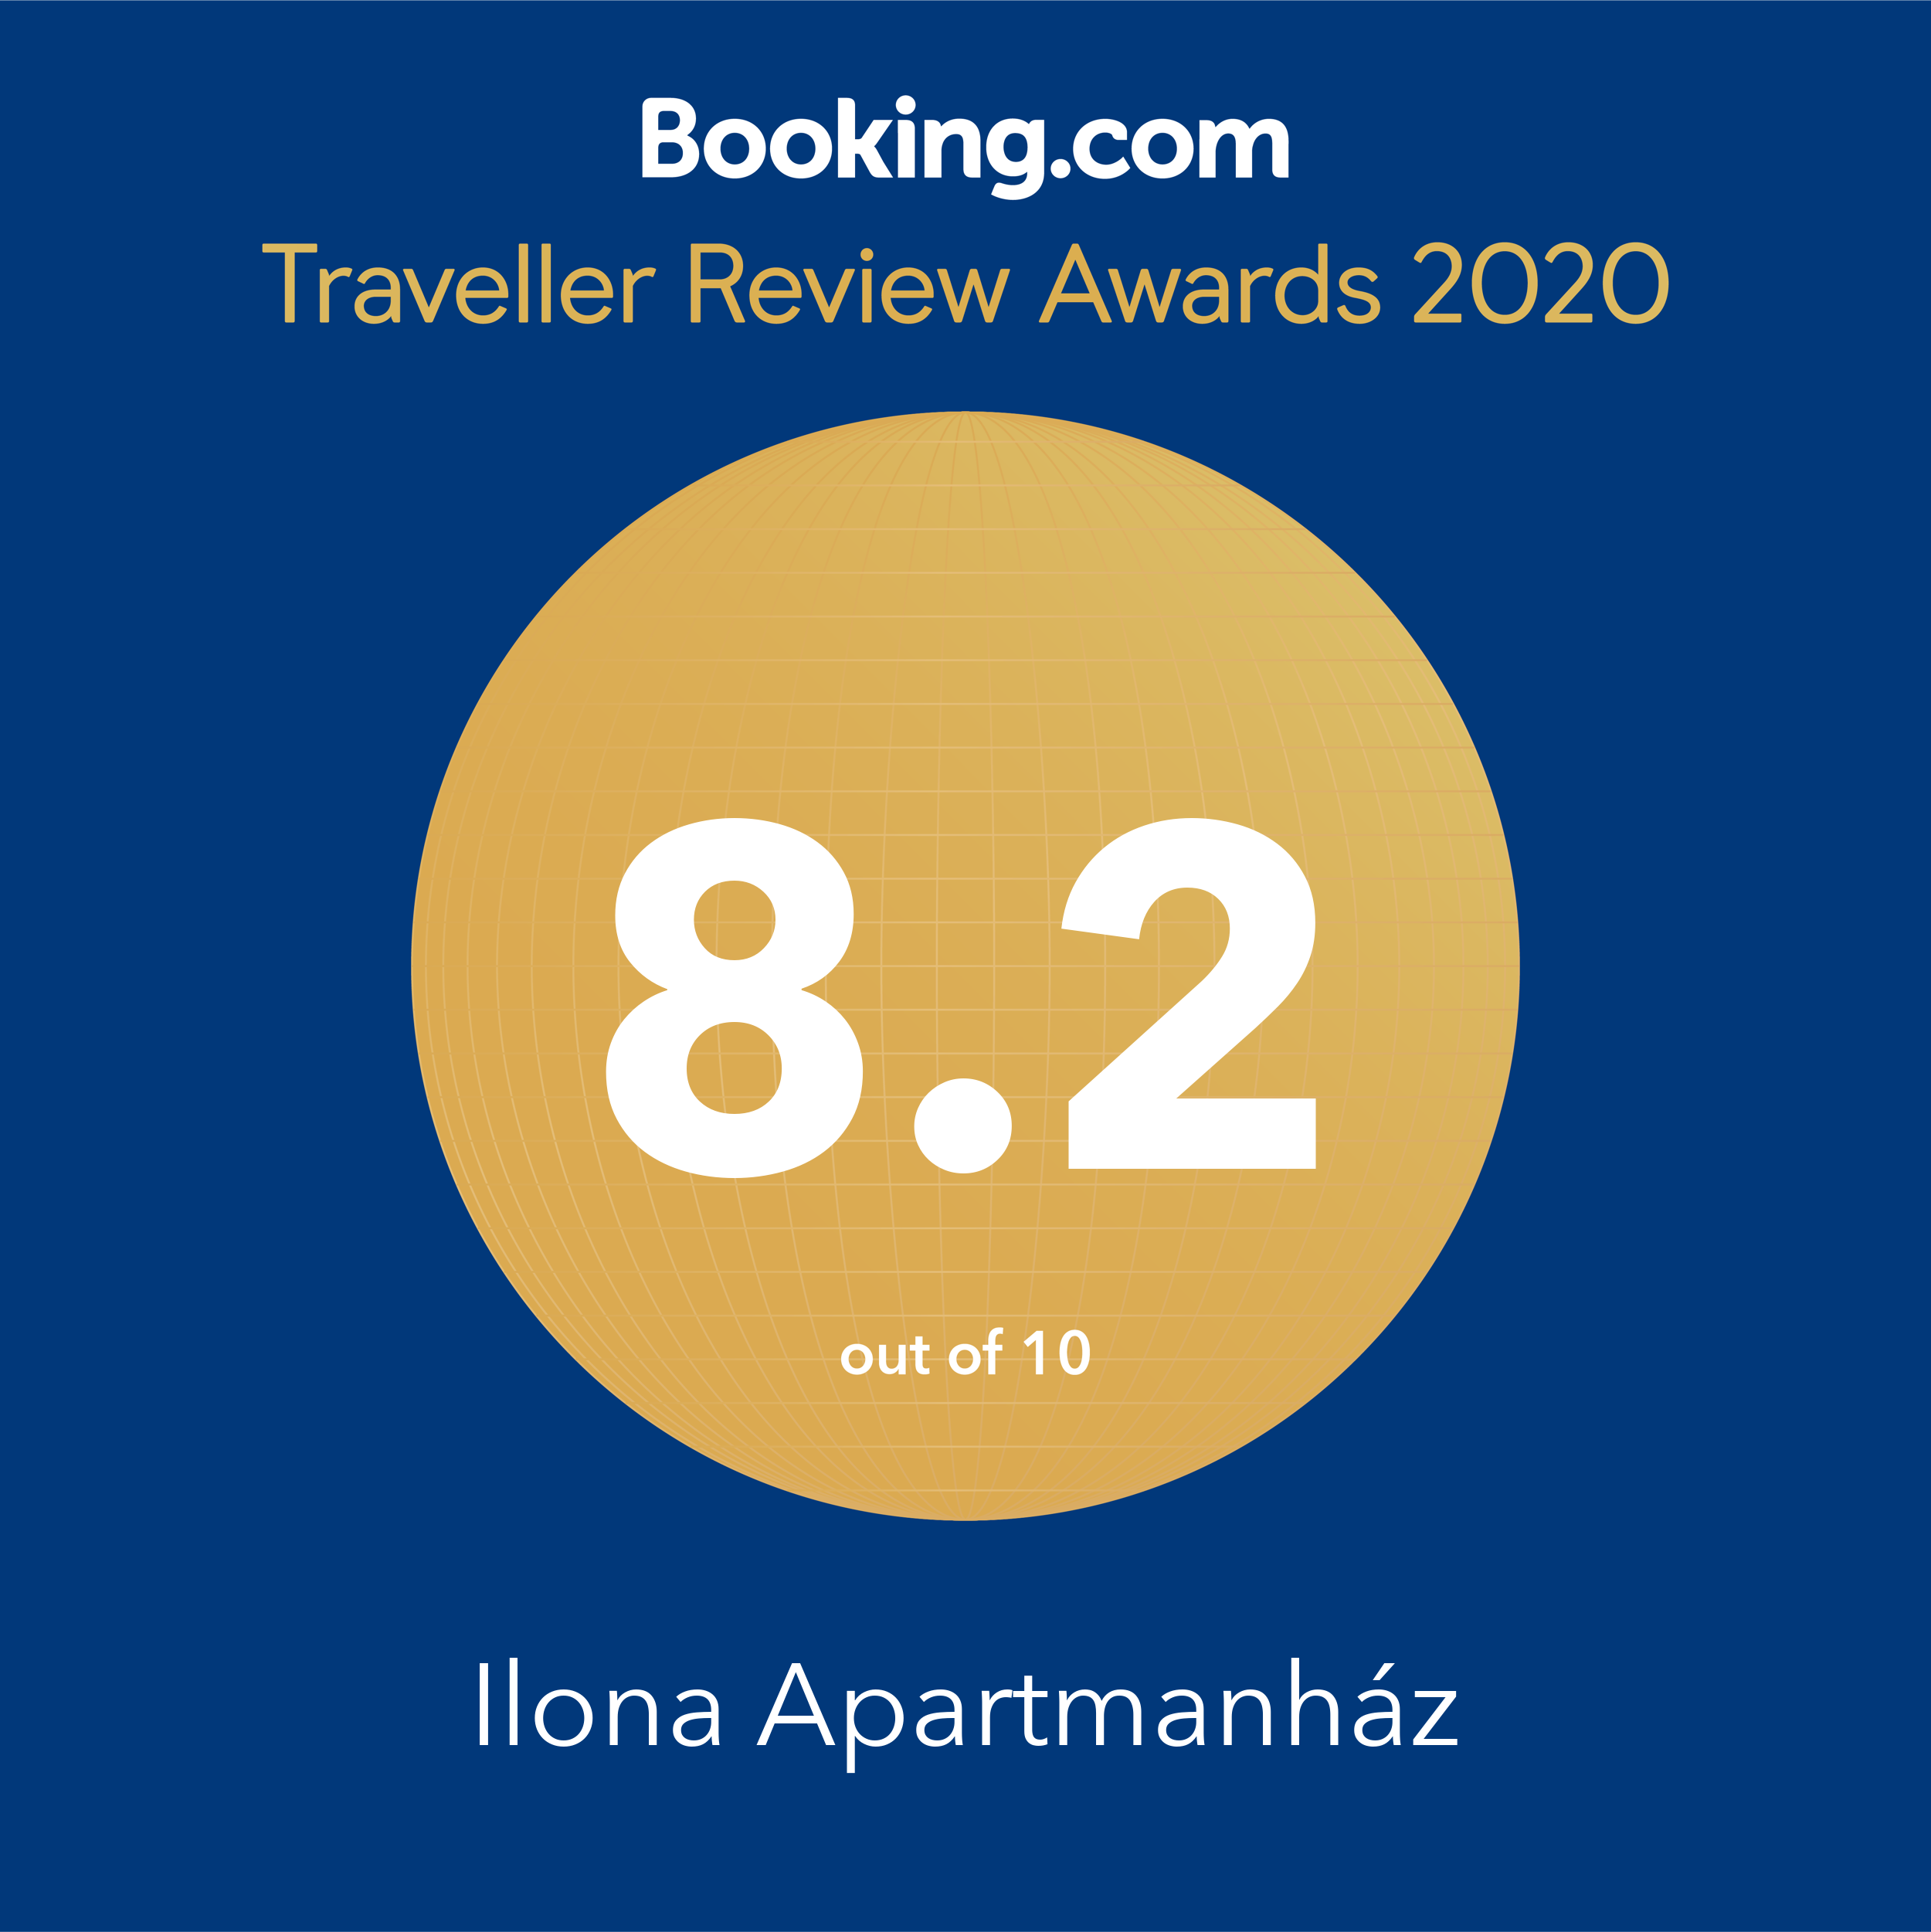 booking.com - Traveller Review Award 2020